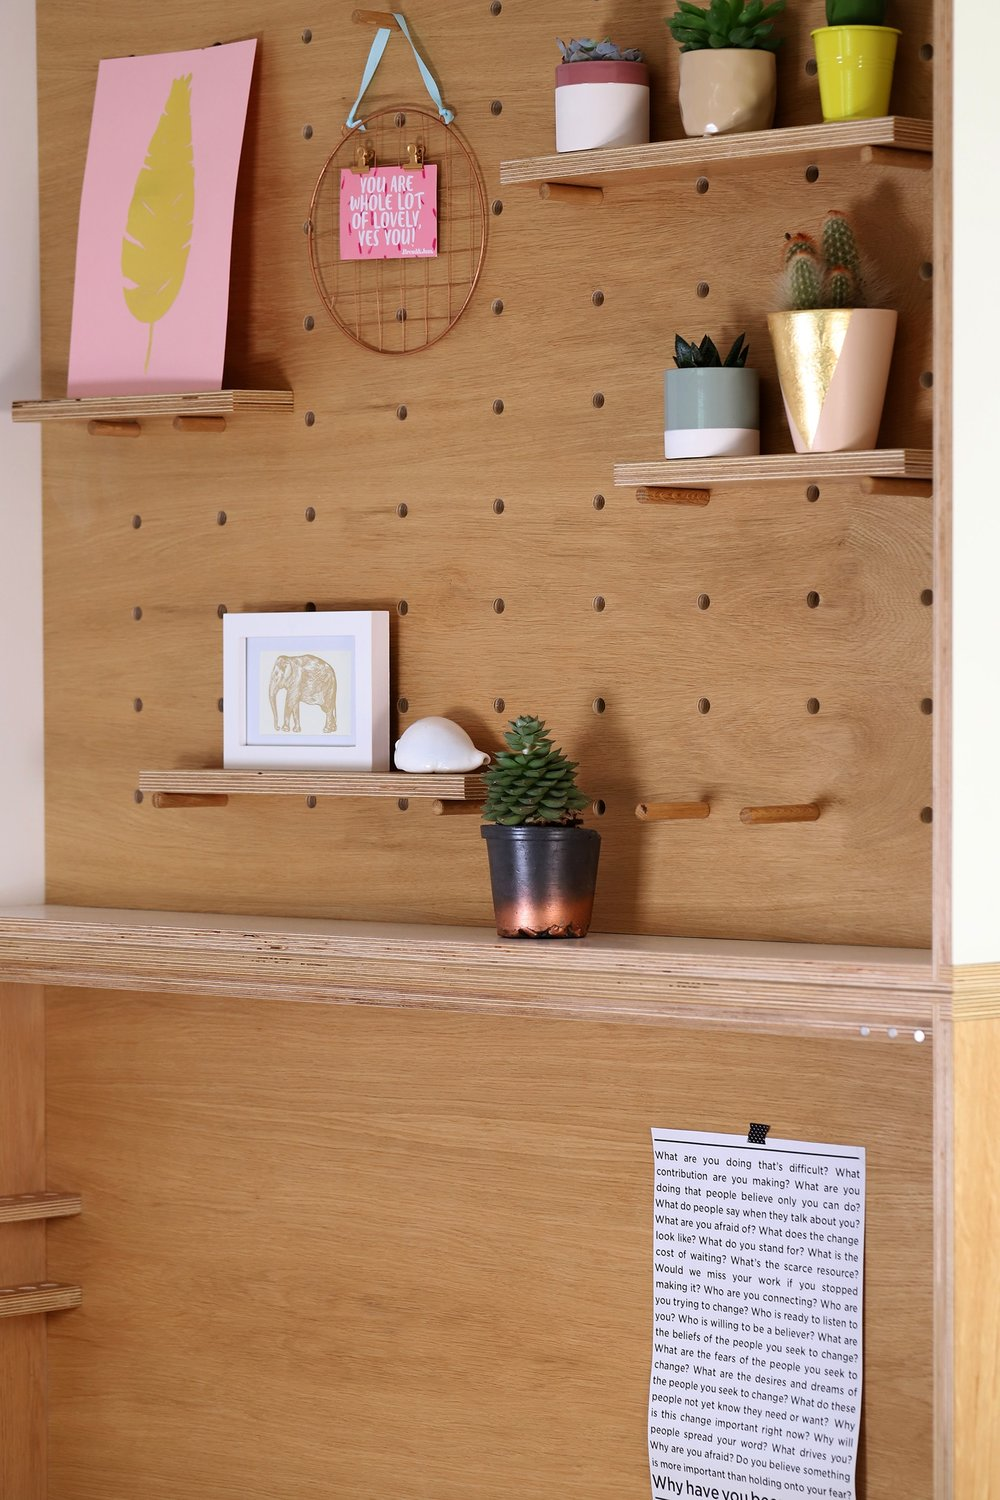 The modular peg board allows the family to display sentimental items or leave notes.